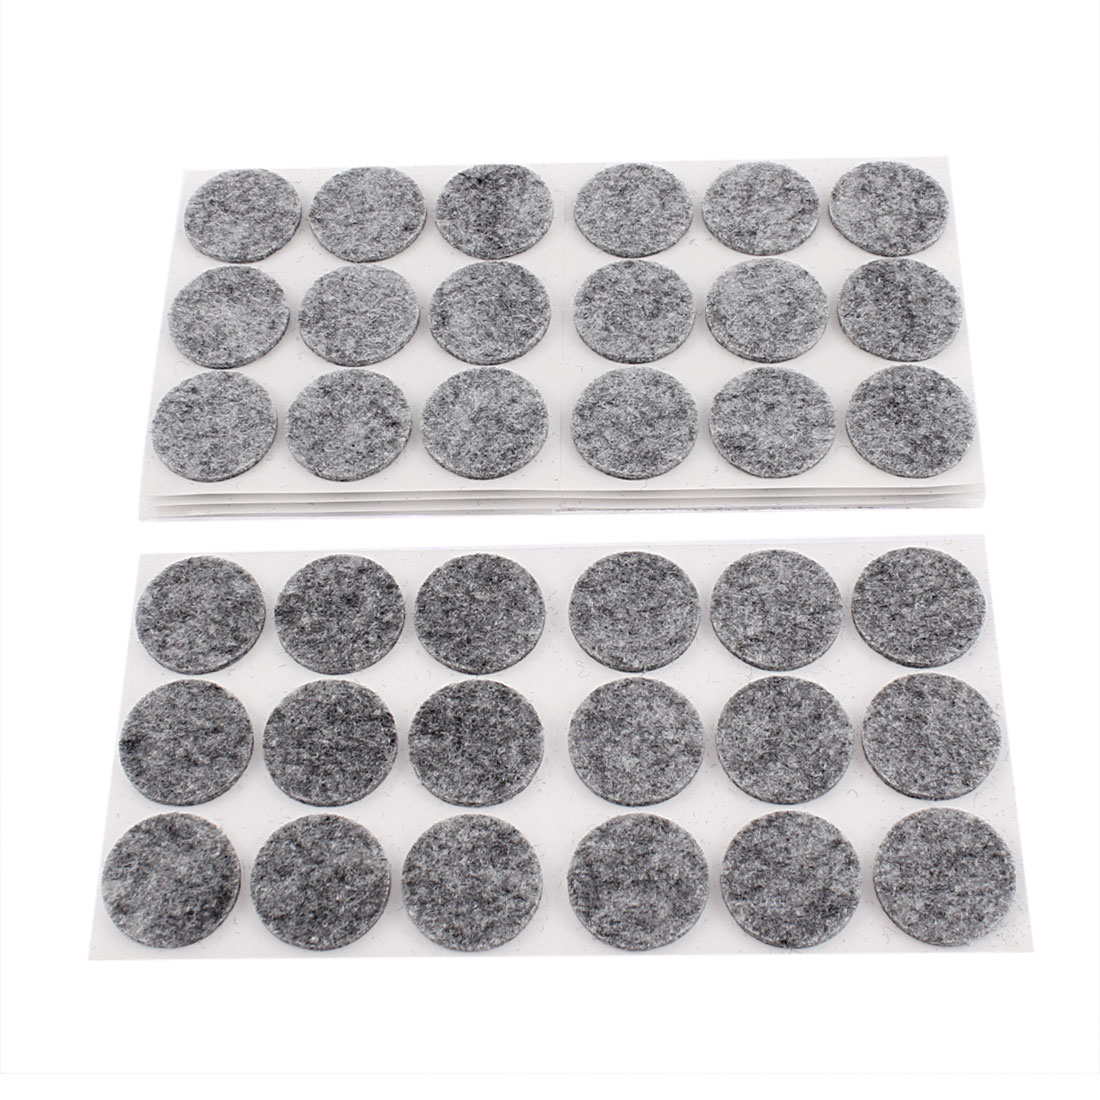 Furniture Felt Round Shaped Chair Sofa Table Legs Anti Skid Floor Protectors Pads 90 Pcs